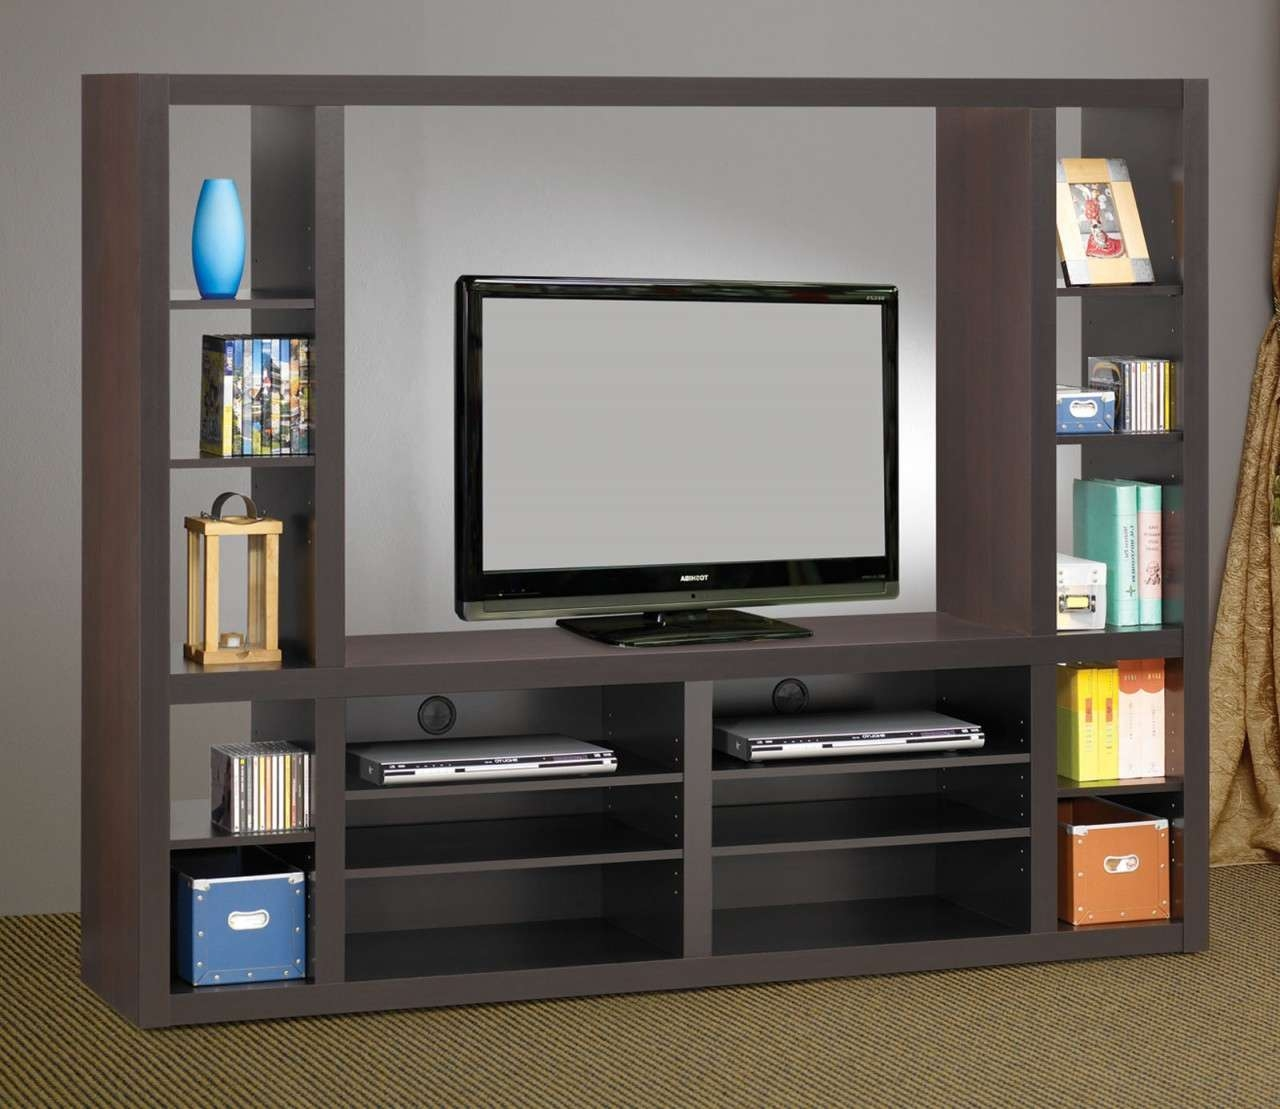 Wall Mounted Tv Cabinets For Flat Screens With Doors – Imanisr For Wall Mounted Tv Cabinets For Flat Screens With Doors (View 6 of 20)